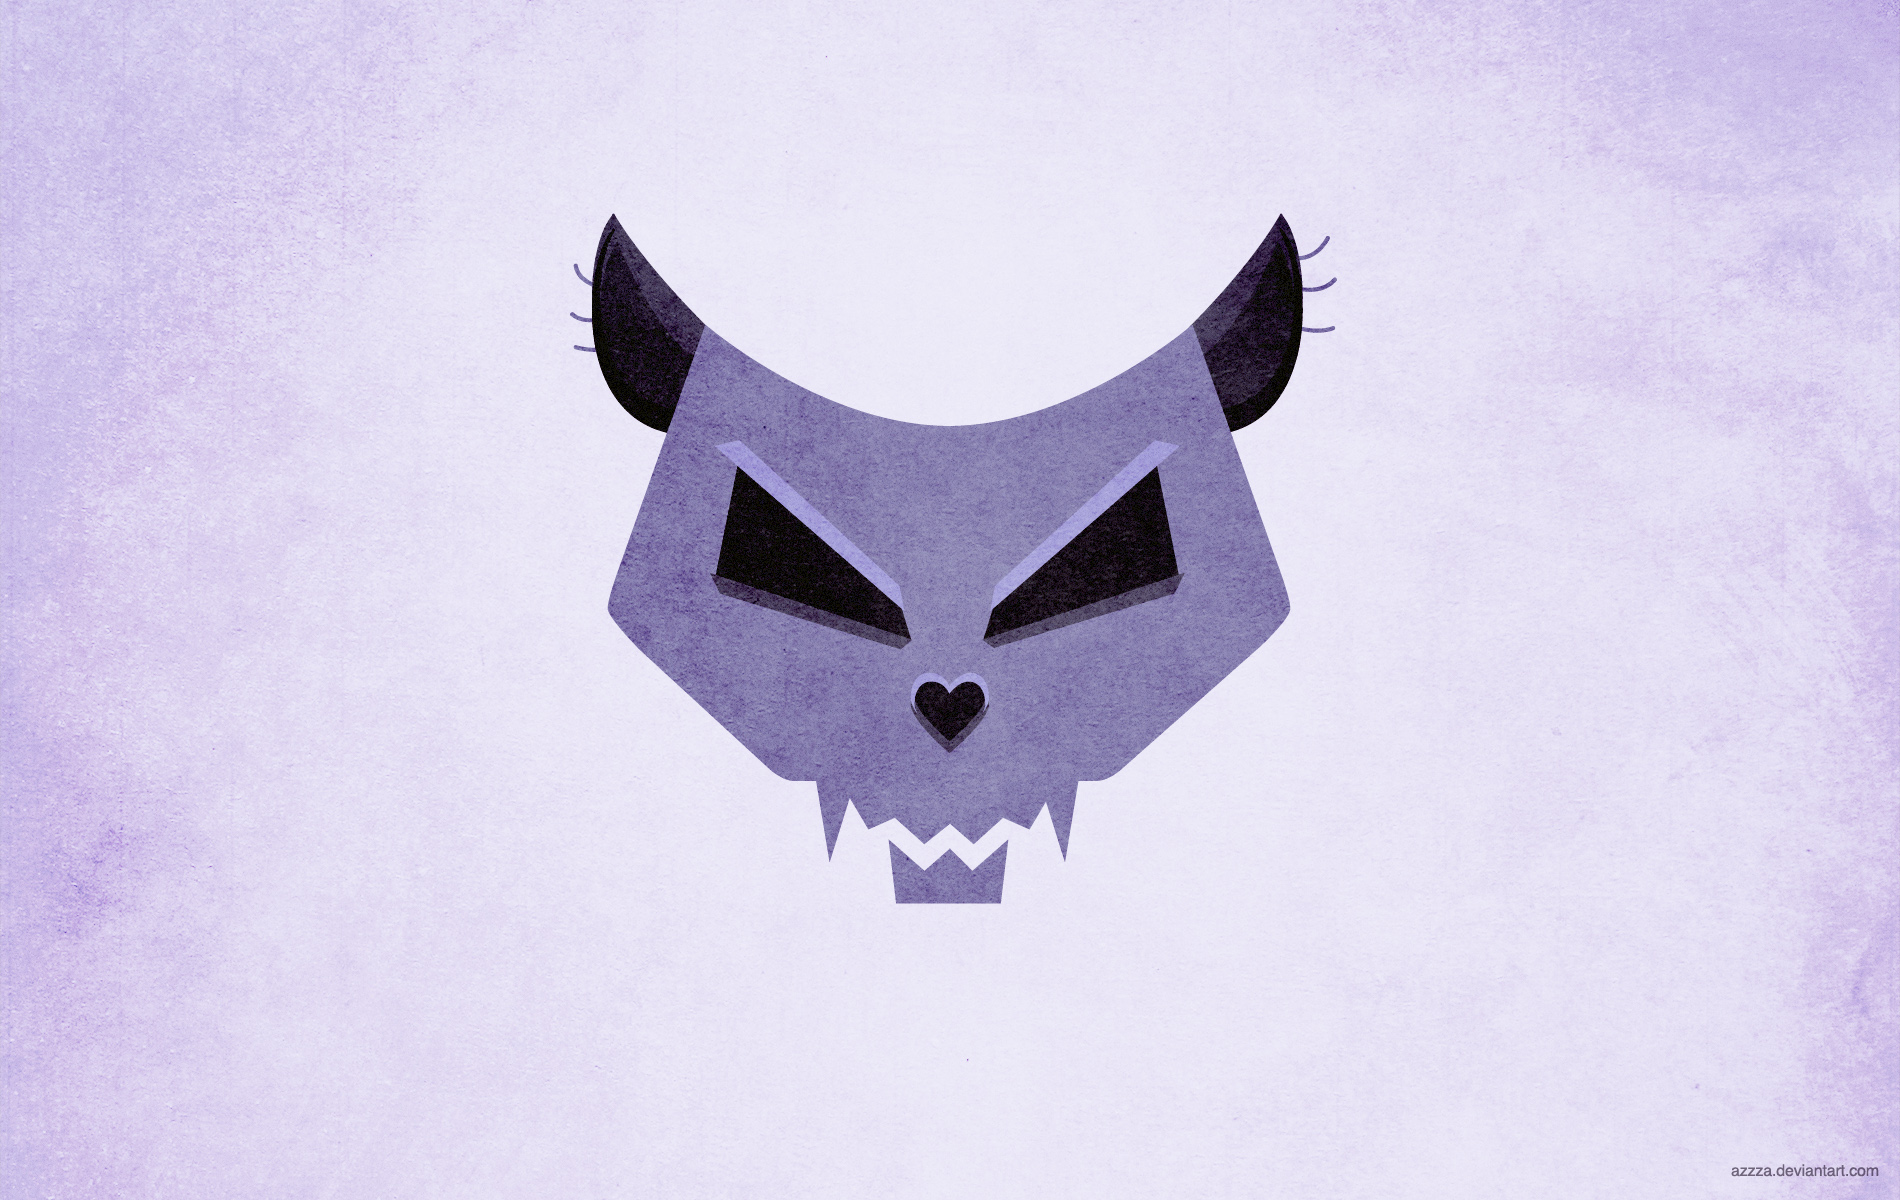 Cat skull wallpaper v.2 by azzza